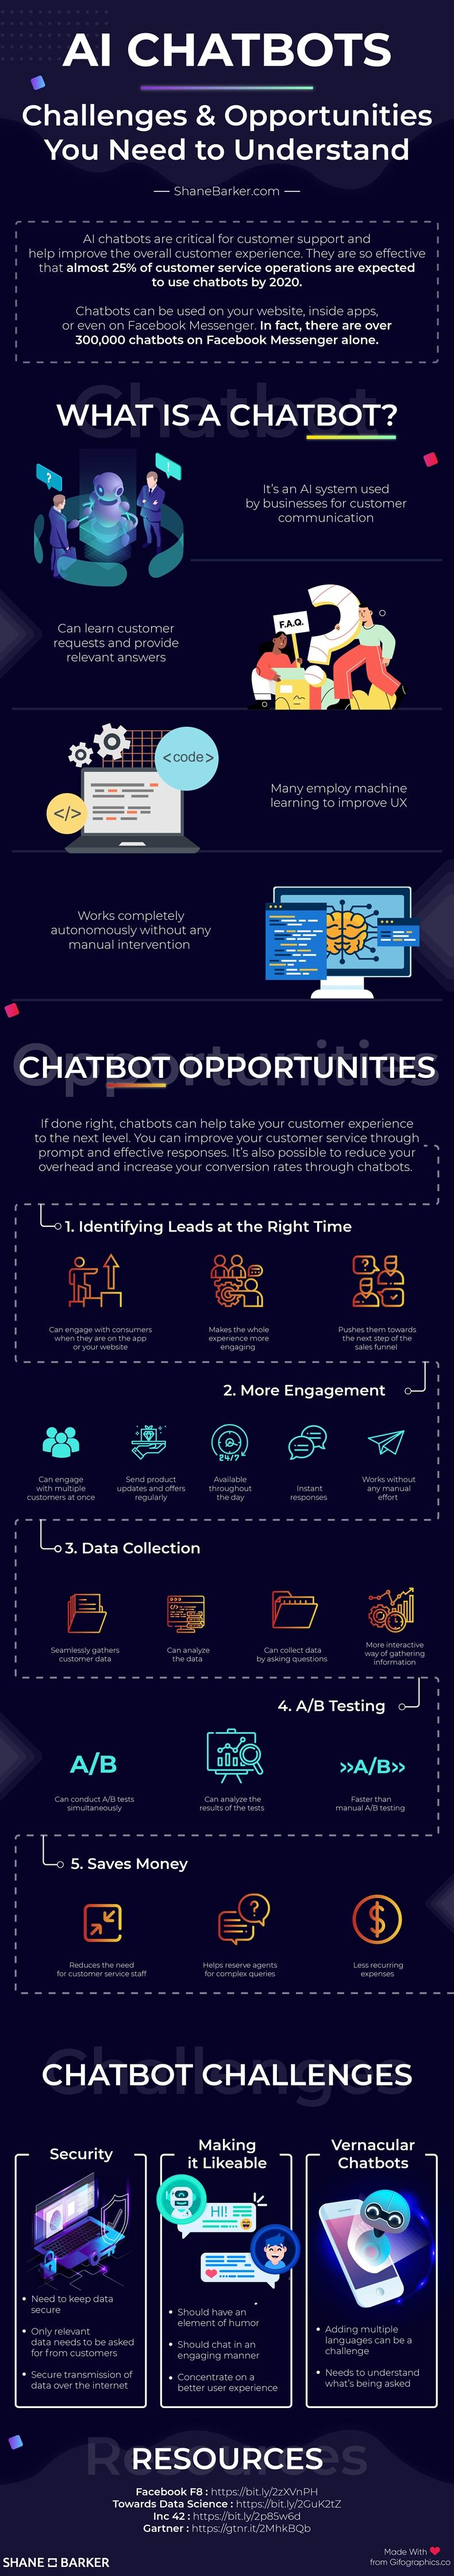 Chatbot advantages and challenges infographic